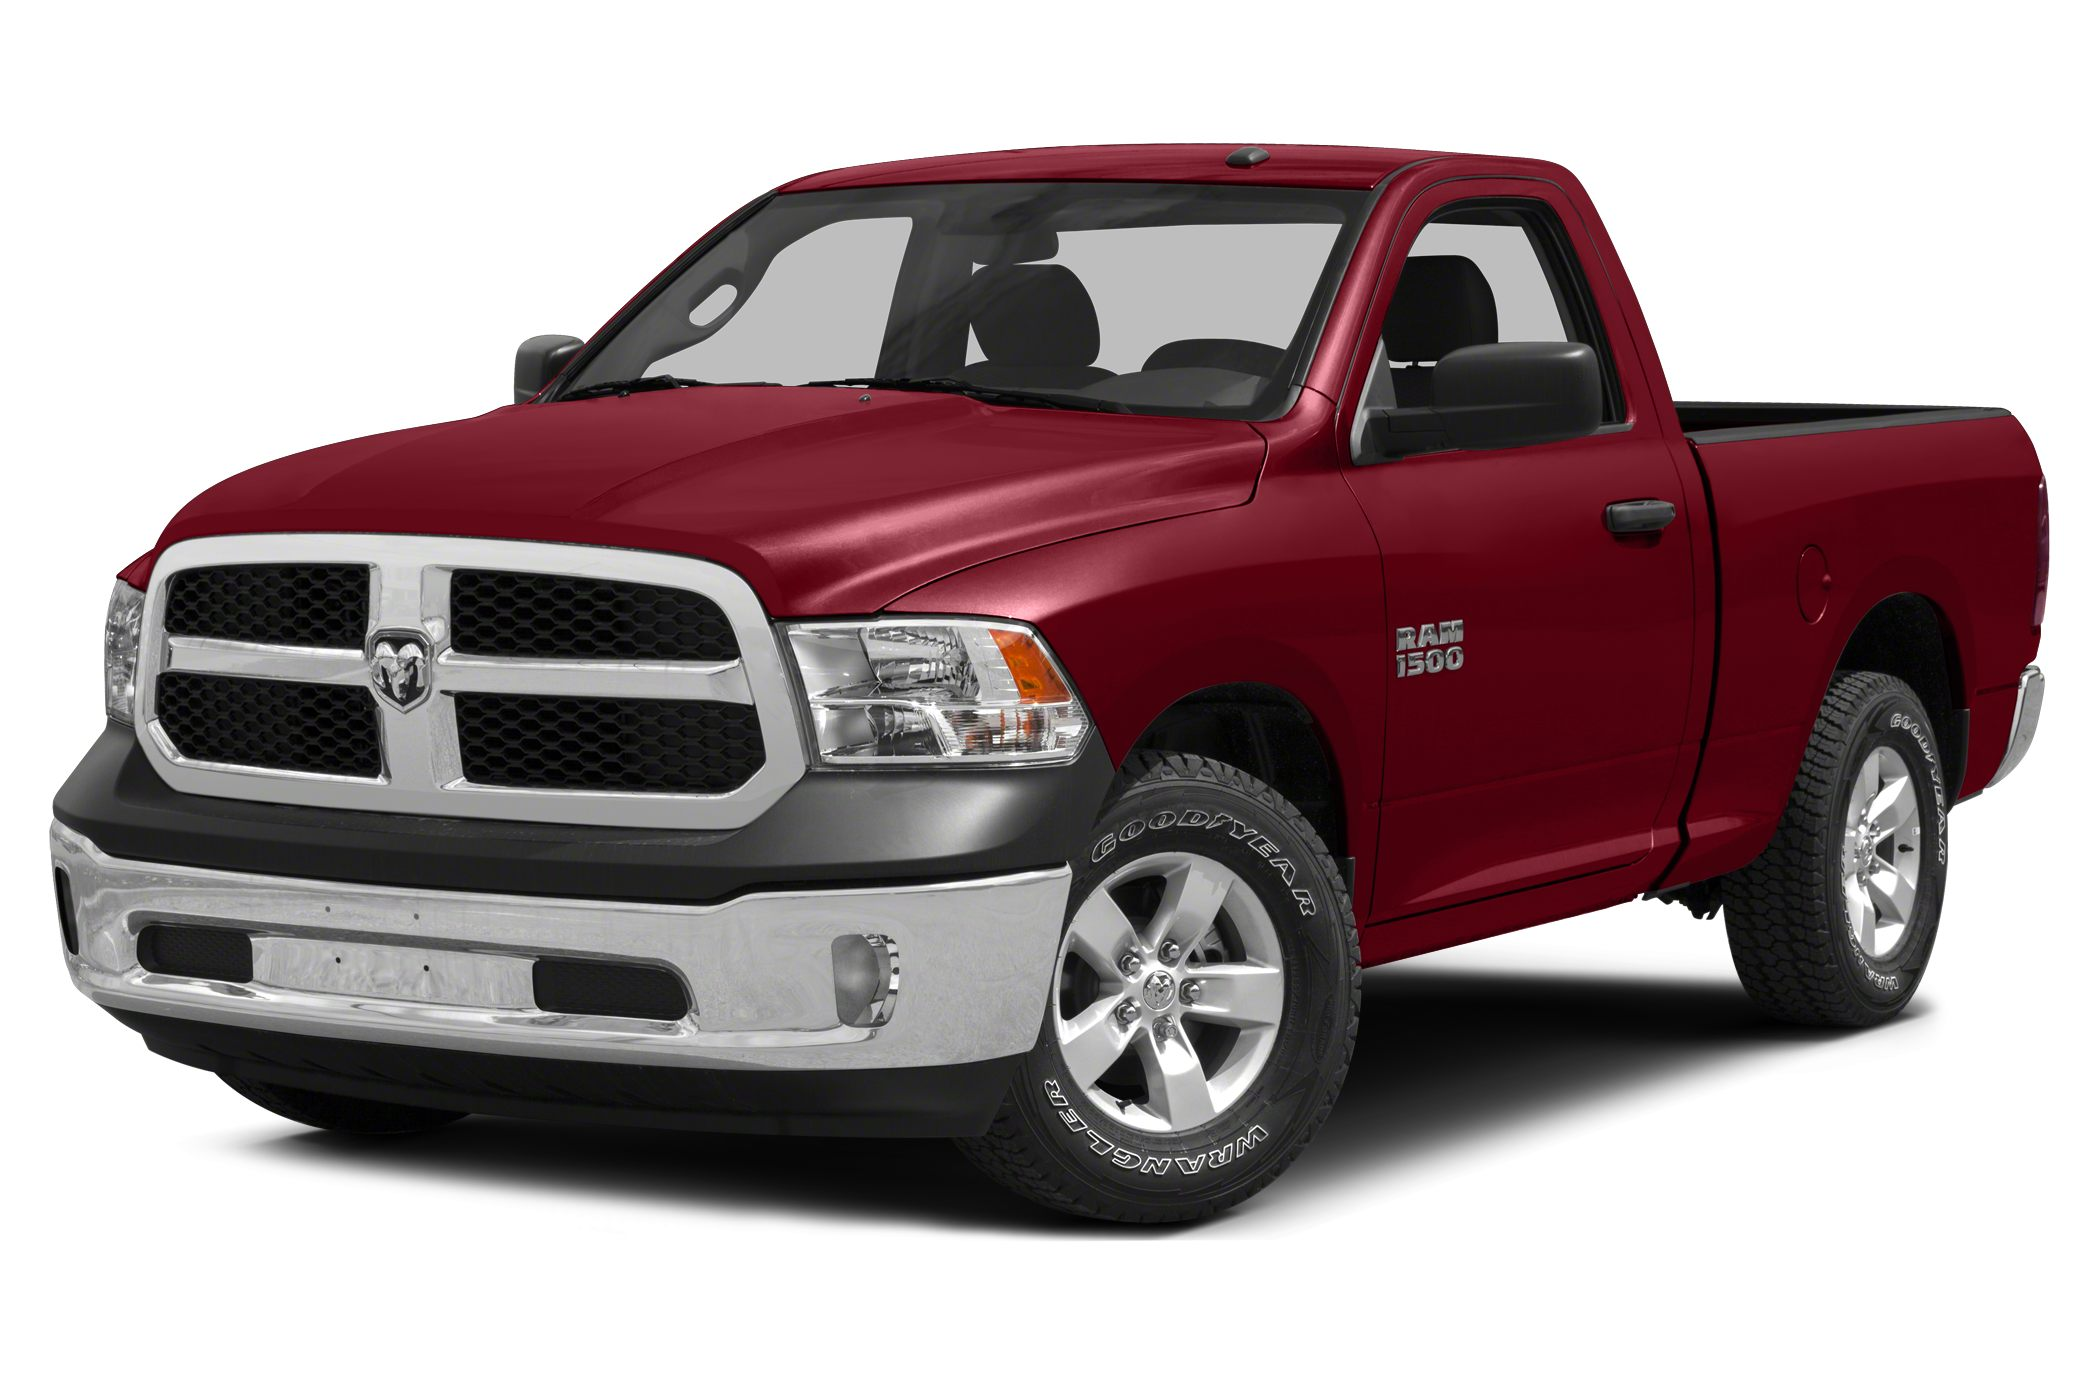 2015 RAM 1500 SLT Crew Cab Pickup for sale in Waterford for $46,745 with 22 miles.